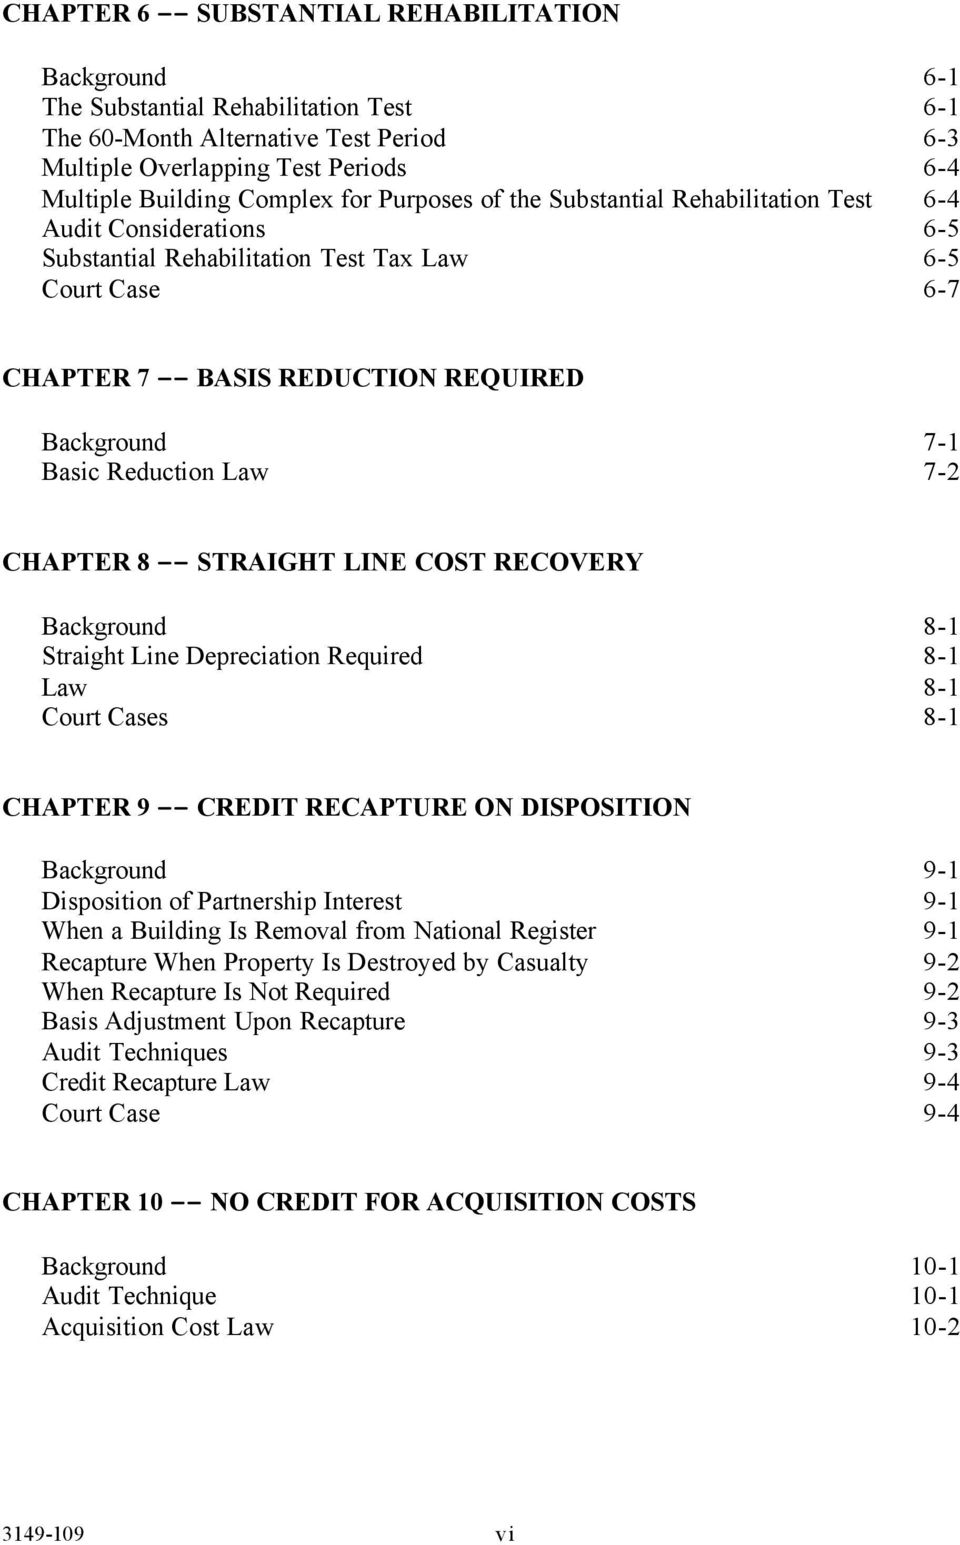 Reduction Law 7-1 7-2 CHAPTER 8 -- STRAIGHT LINE COST RECOVERY Background Straight Line Depreciation Required Law Court Cases 8-1 8-1 8-1 8-1 CHAPTER 9 -- CREDIT RECAPTURE ON DISPOSITION Background